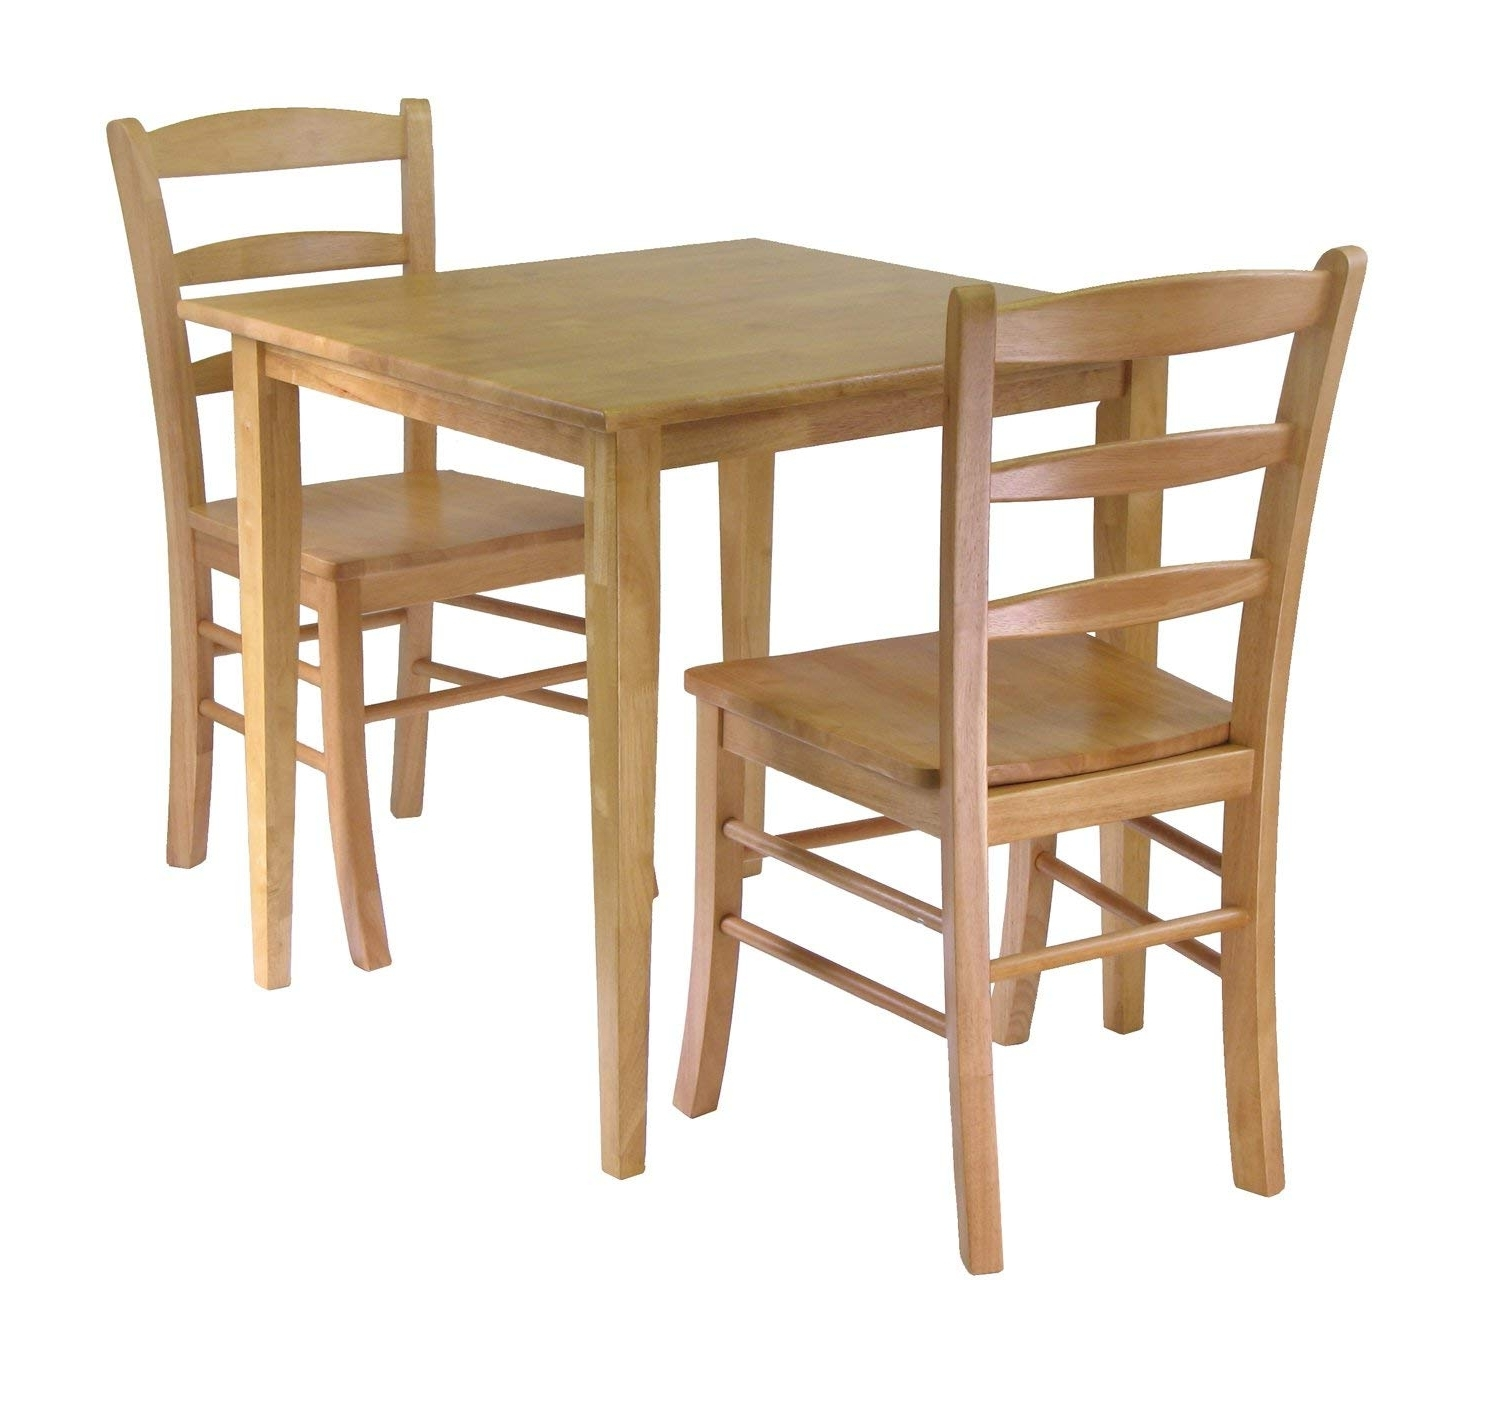 Amazon – Winsome Groveland Square Dining Table With 2 Chairs, 3 Intended For Most Recent Small Two Person Dining Tables (View 9 of 25)